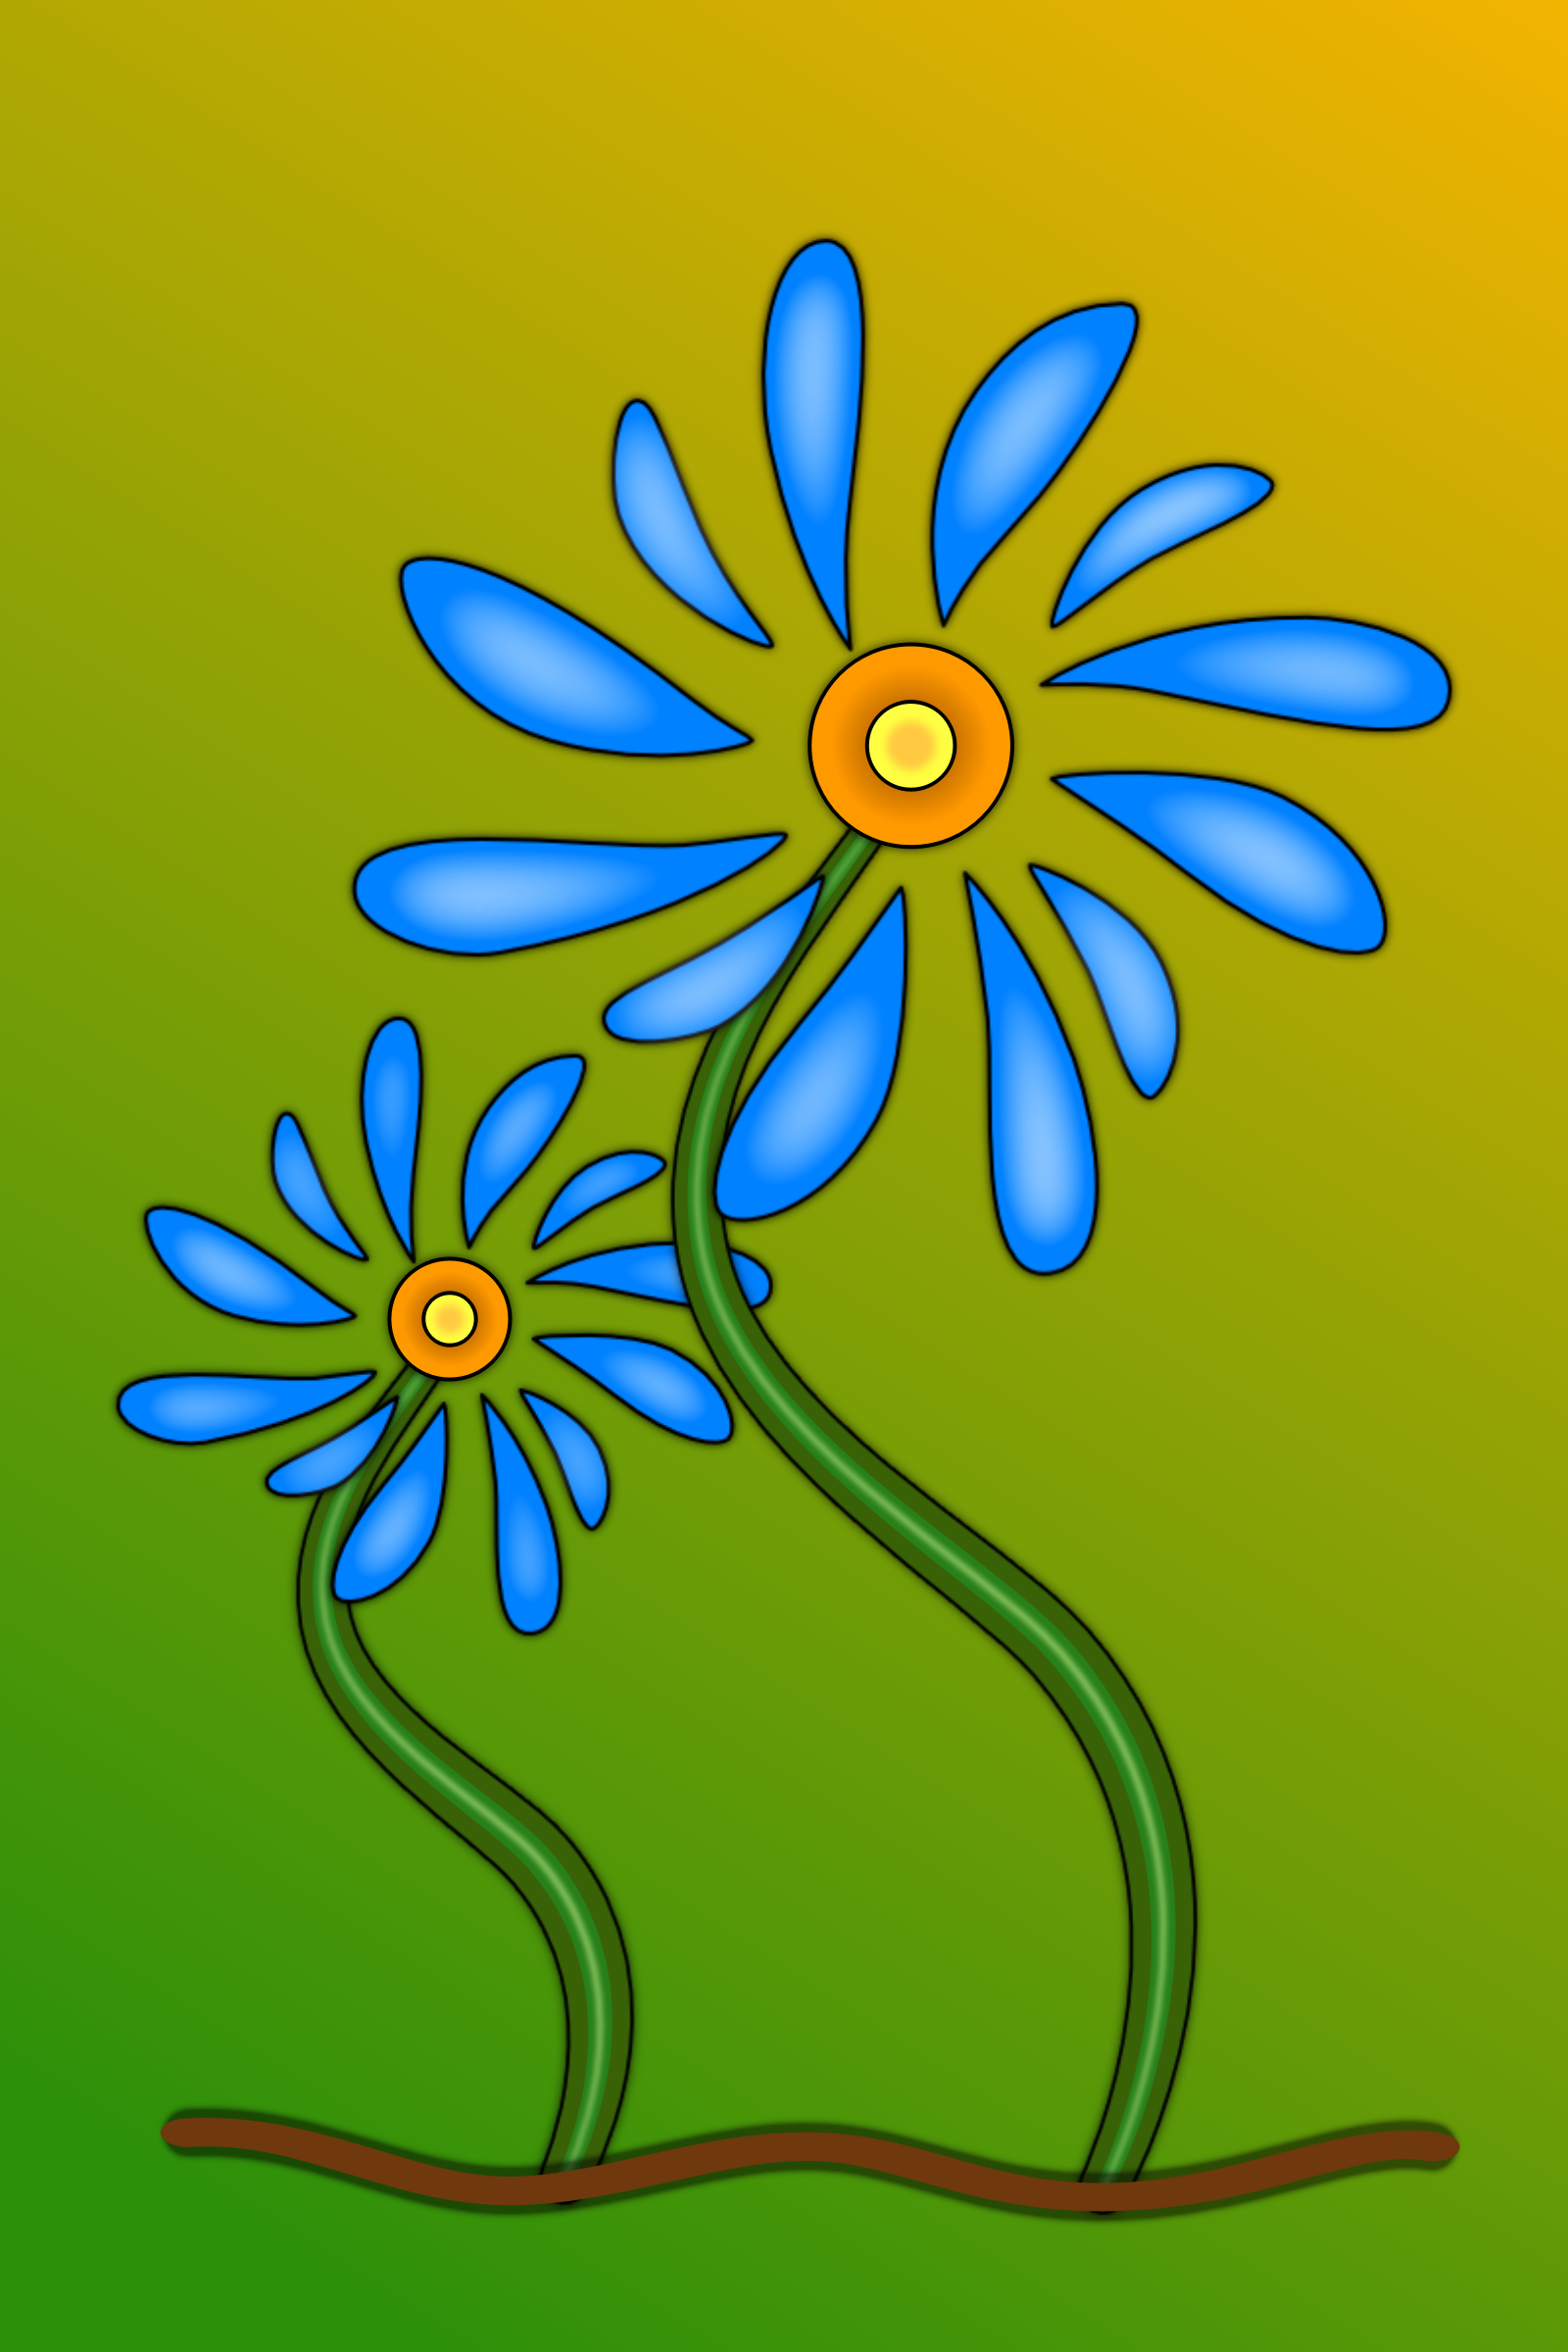 Stylised Flower by Greg.M